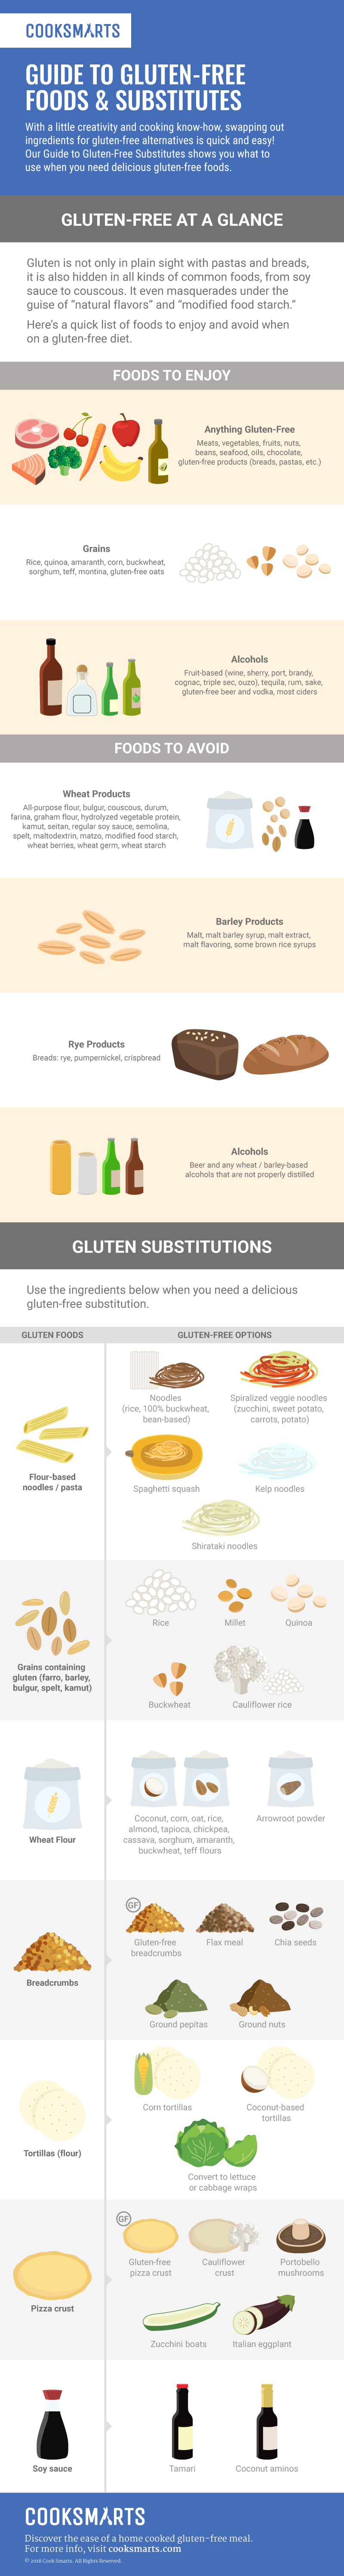 Guide to Gluten-Free Substitutes [Infographic] | Cook Smarts